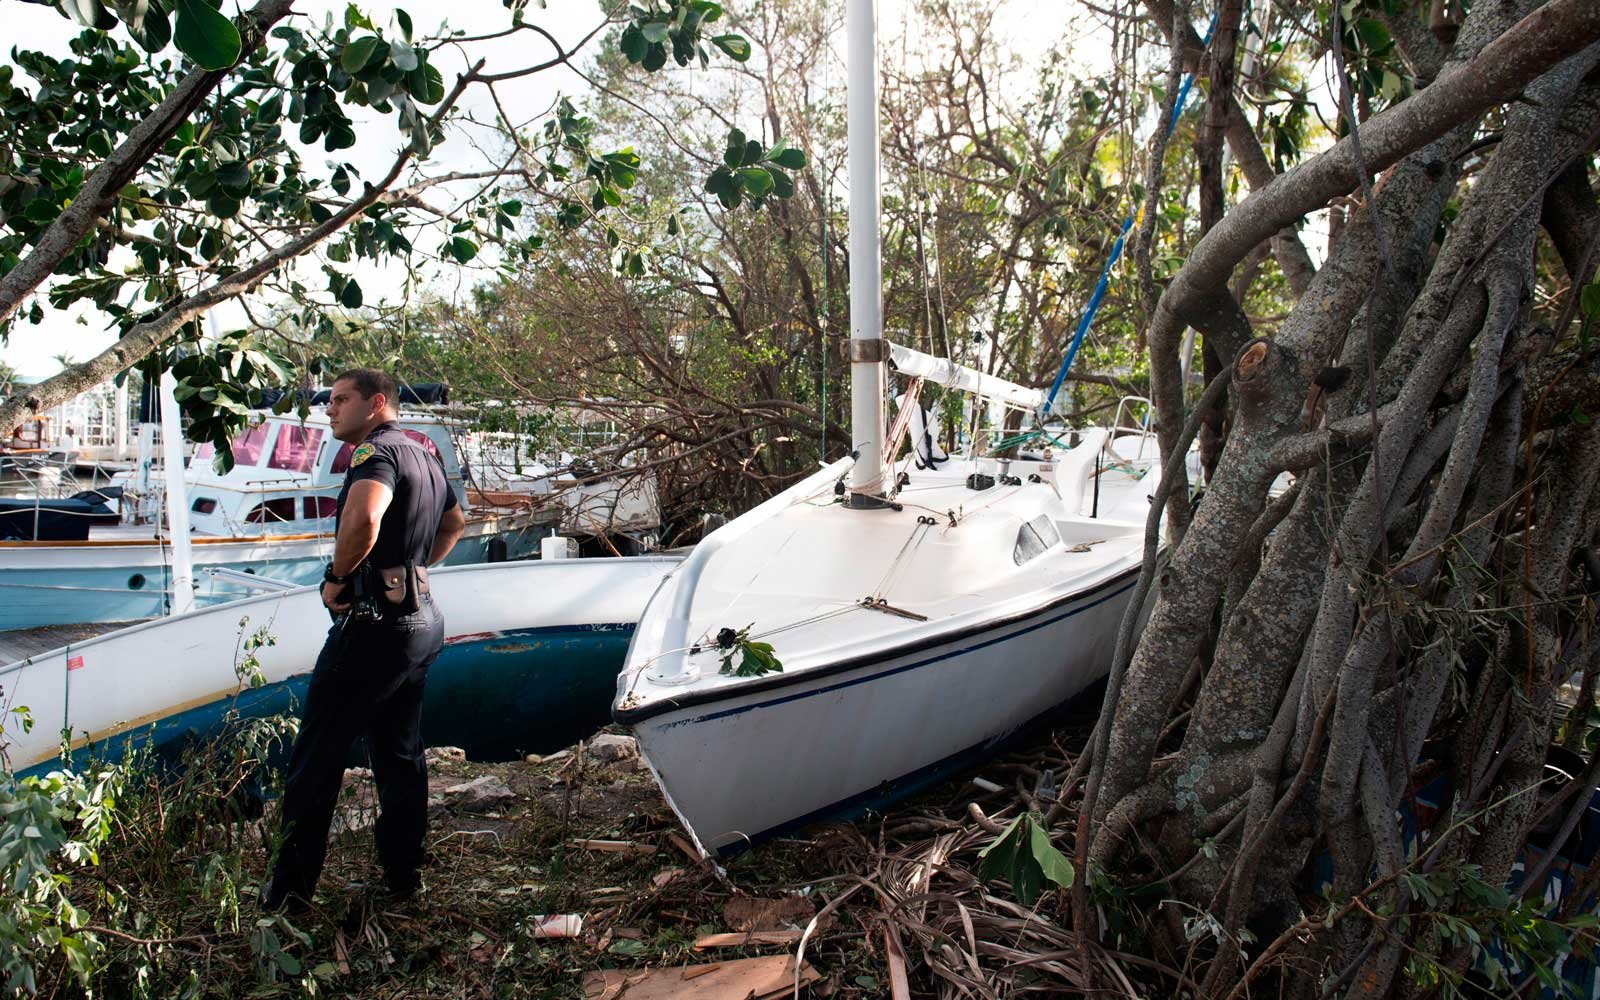 A Miami Police Department Officer looks out over damage and boats brought onto land by Hurricane Irma at a marina in Miami, Florida, September 11, 2017